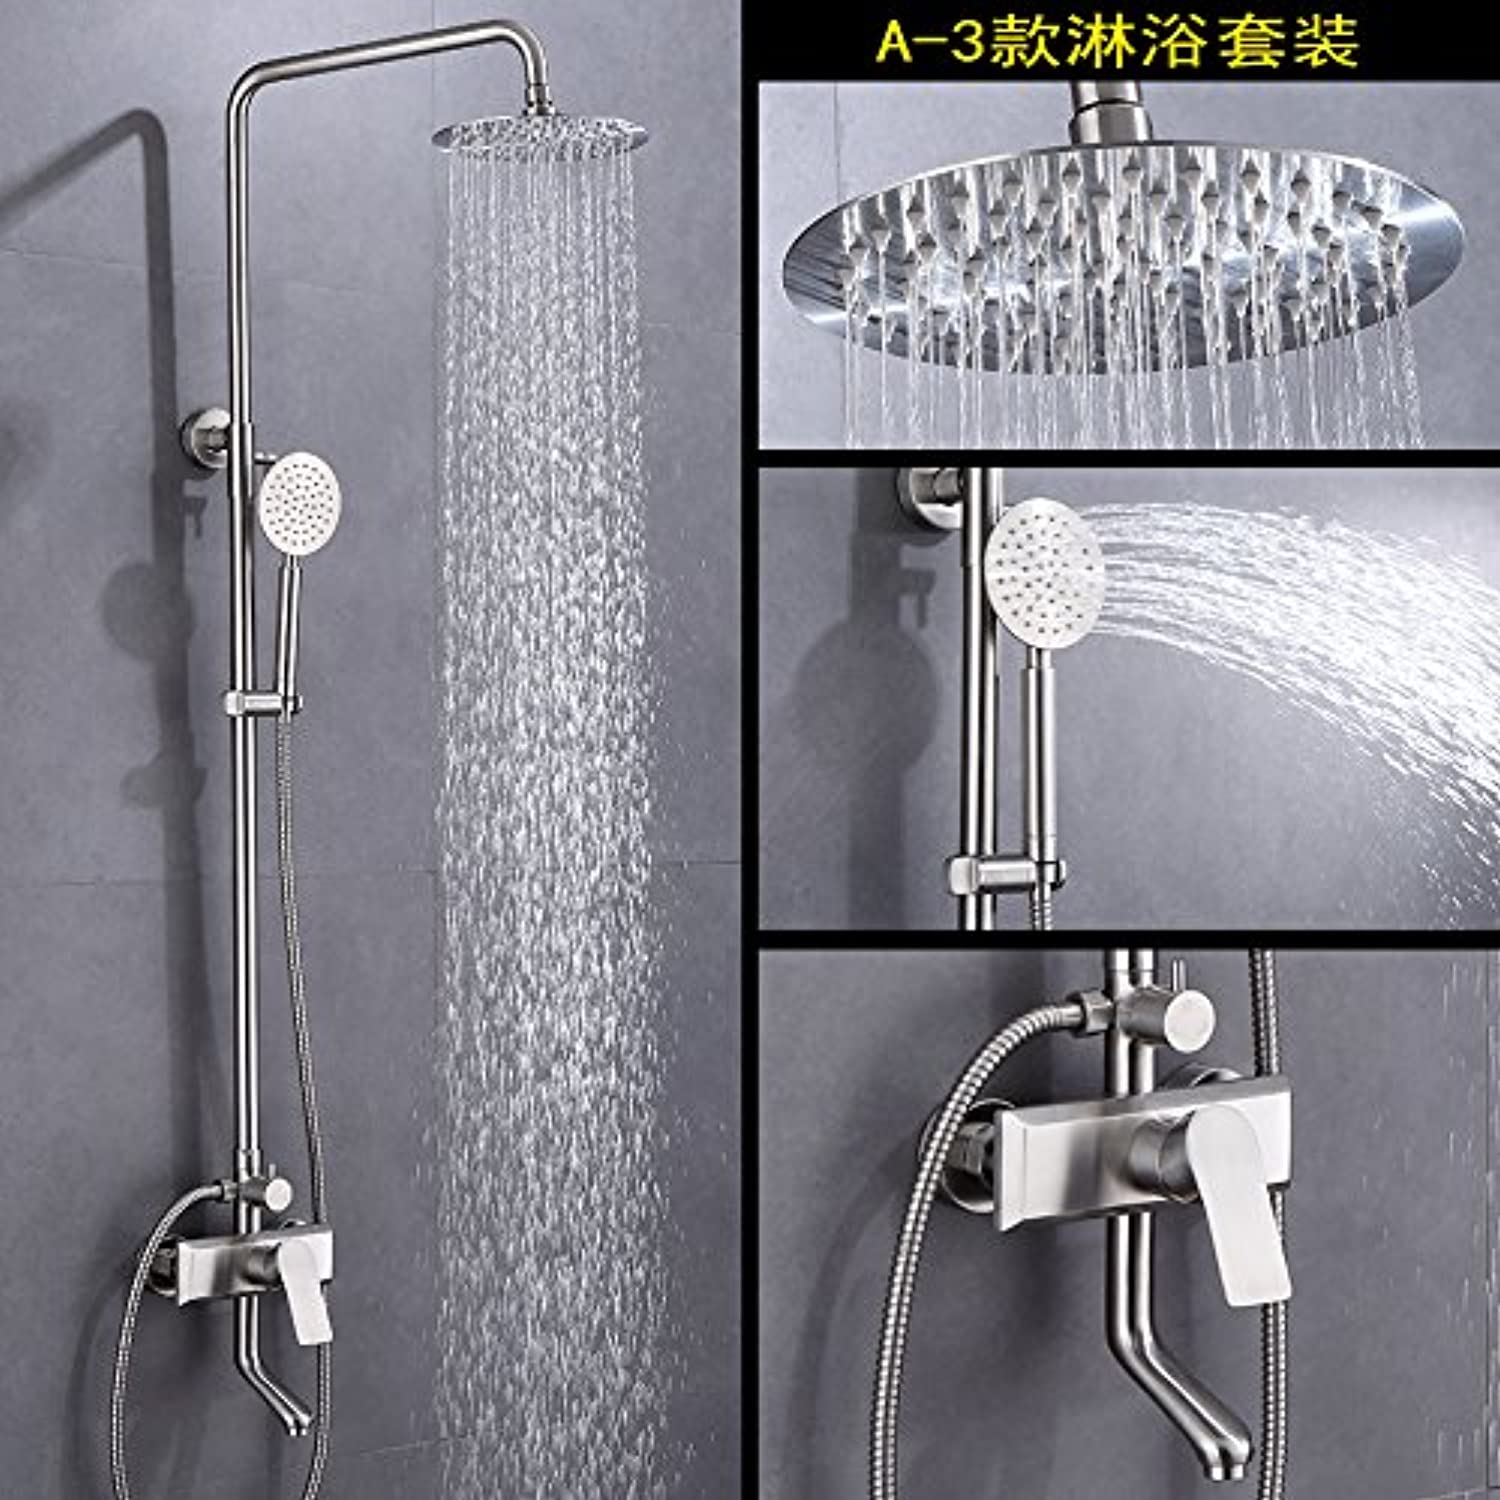 SUHANG It Is Equipped With Wall Hanging Hot And Cold Faucet Shower 304 Stainless Steel Lifting Shower Rain Shower Nozzle Bathroom Double Shower Faucet- 3